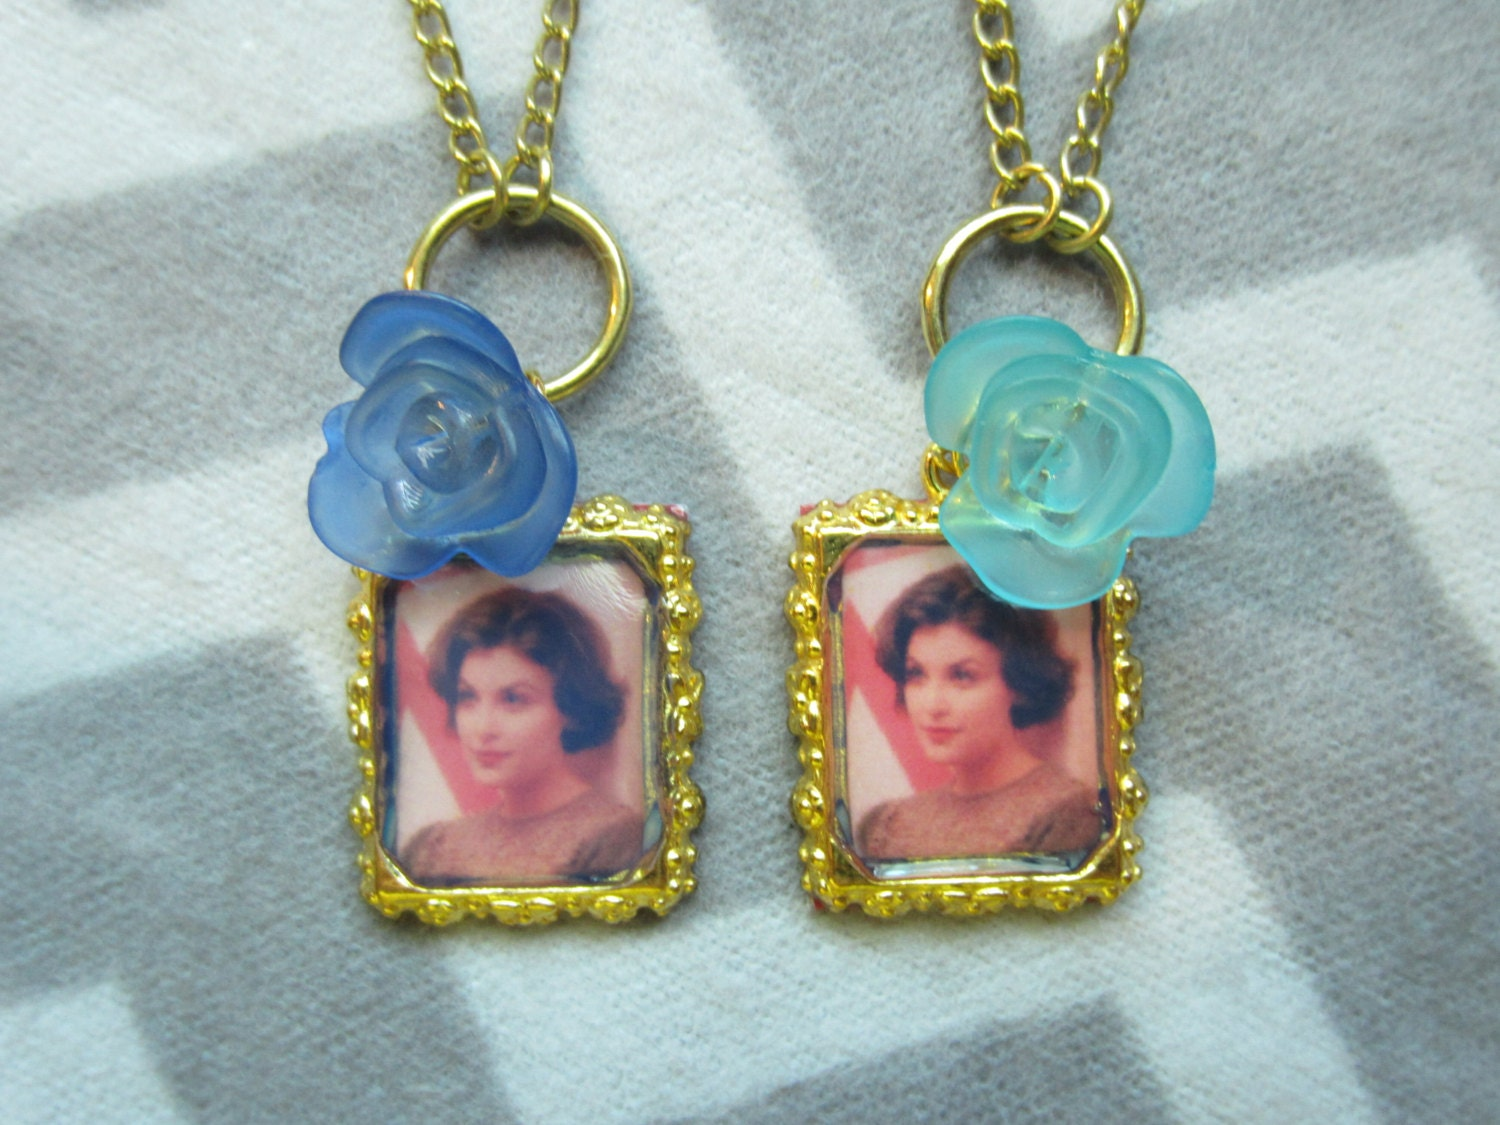 audrey horne blue rose necklace inspired by by